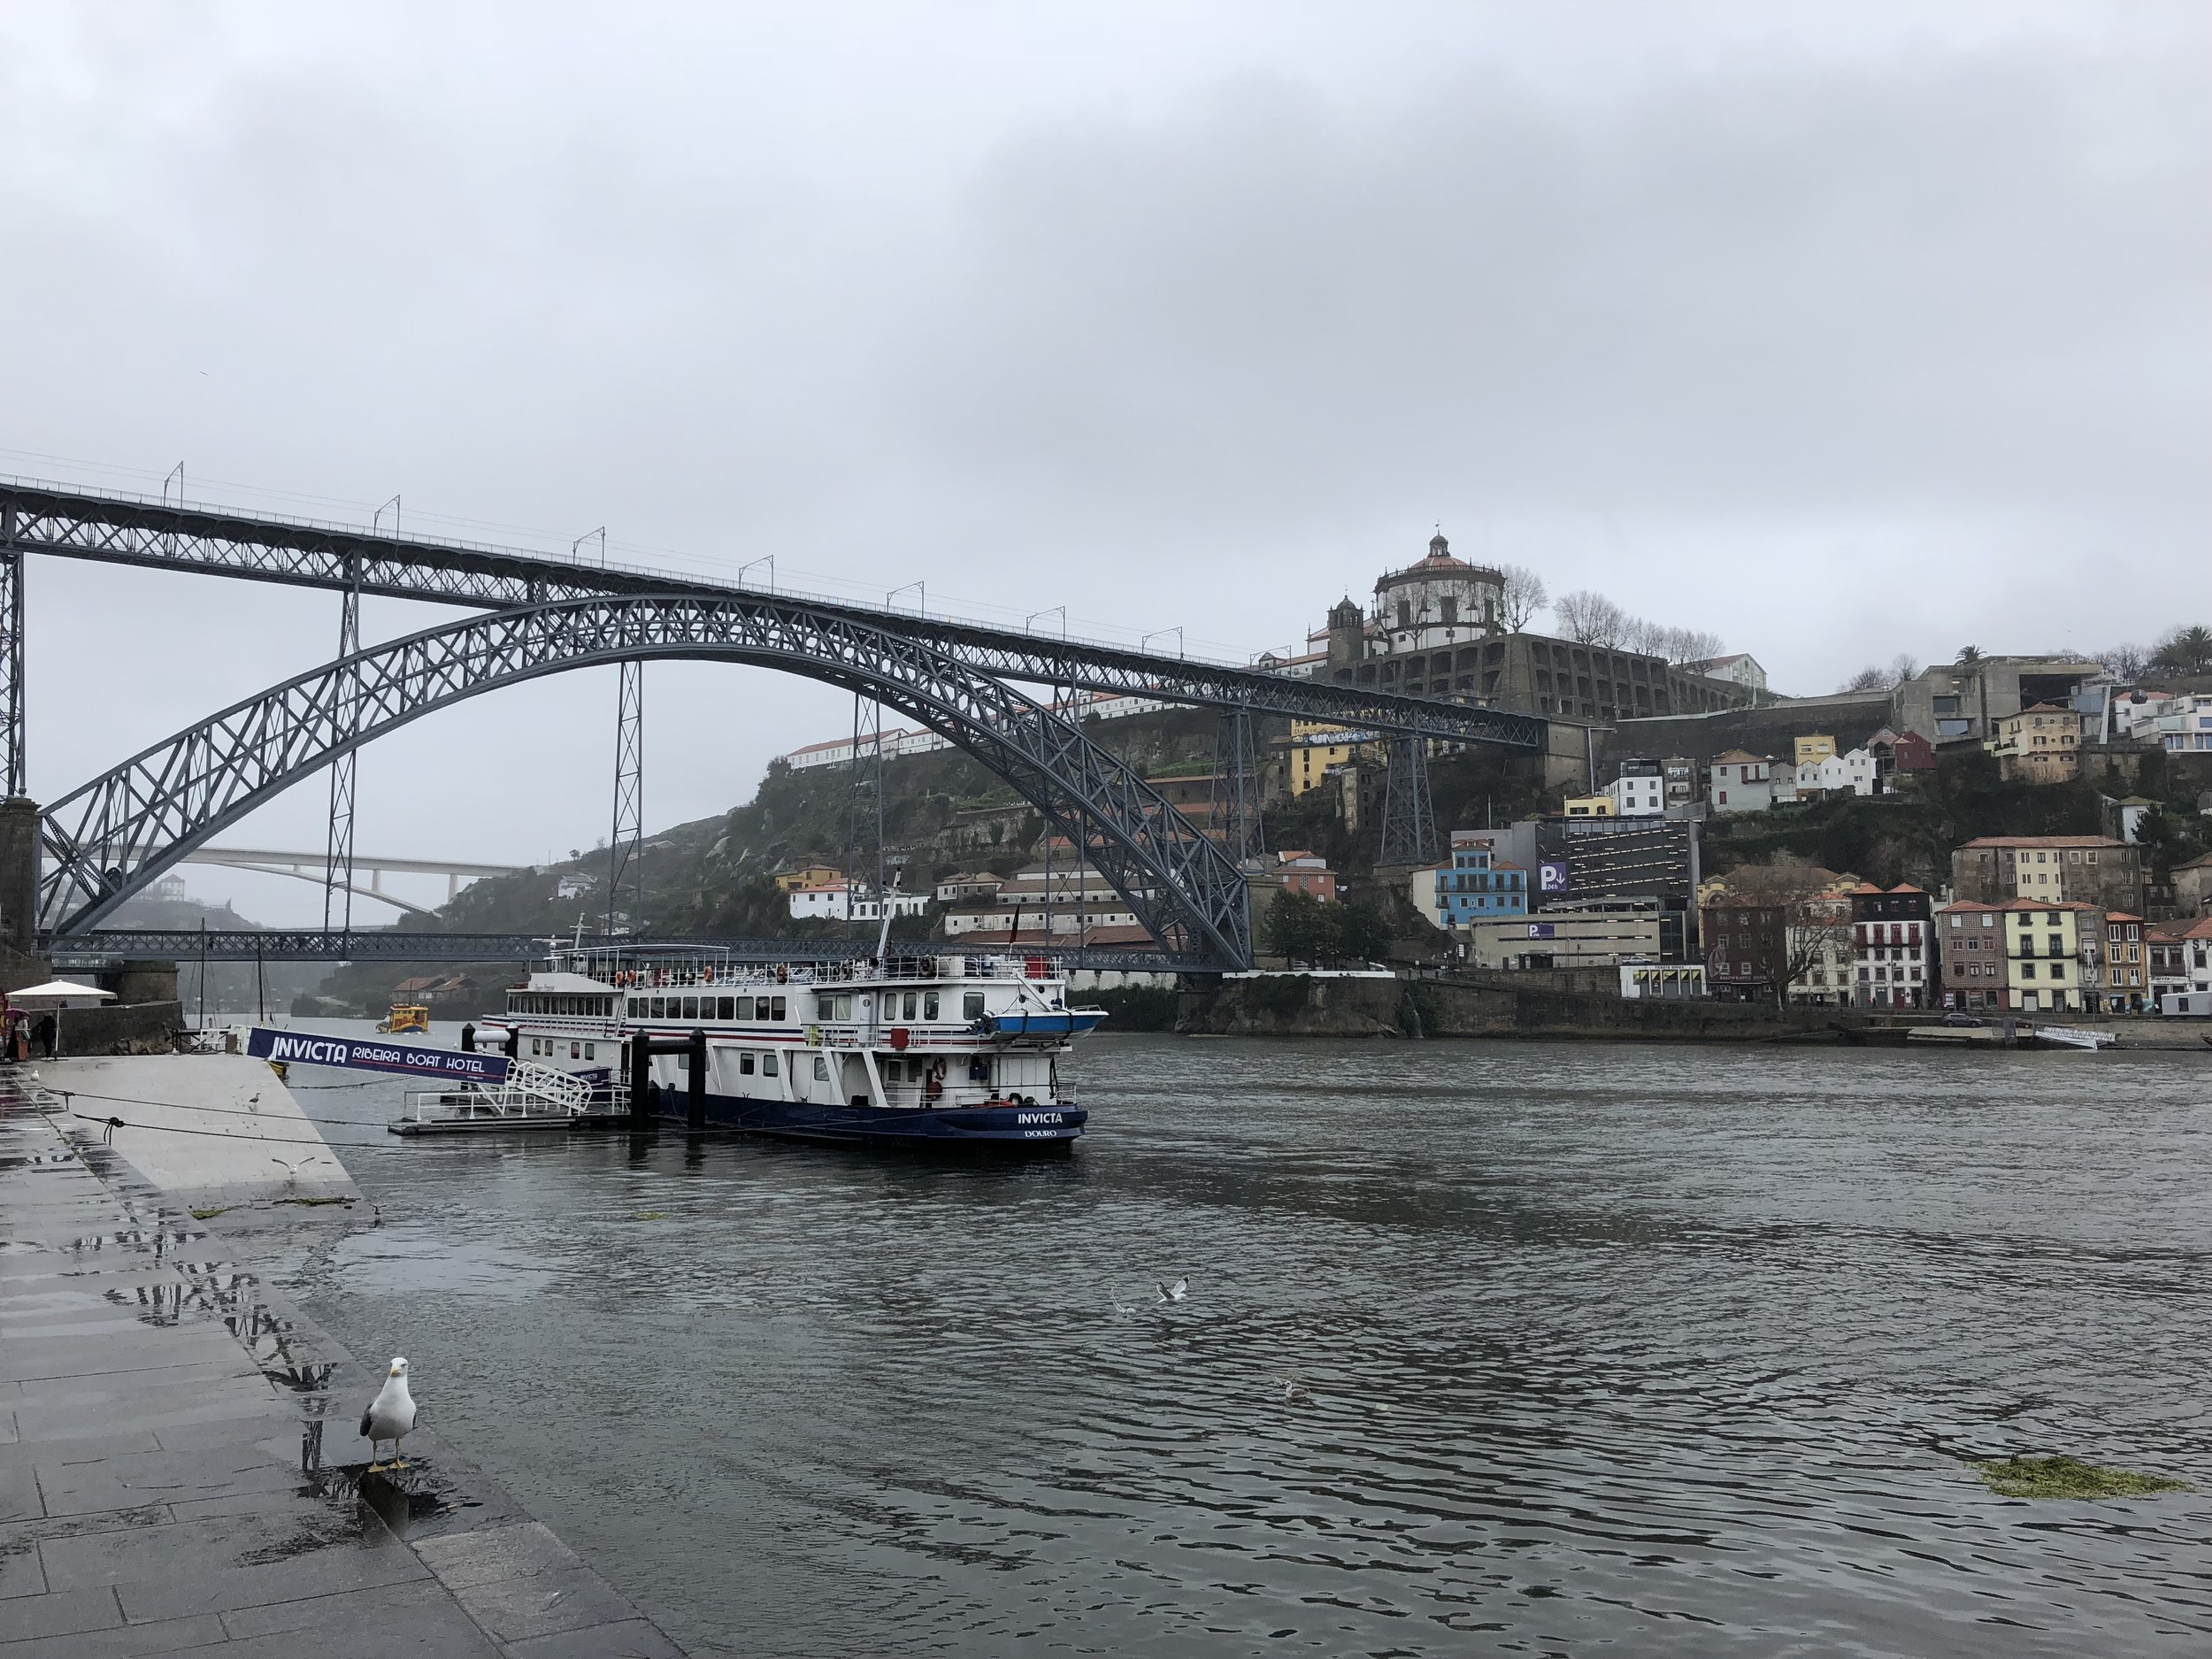 Ponte Dom Luis I over the Duoro river. This was an architectural feat at it's time of construction & remains an icon of Porto.